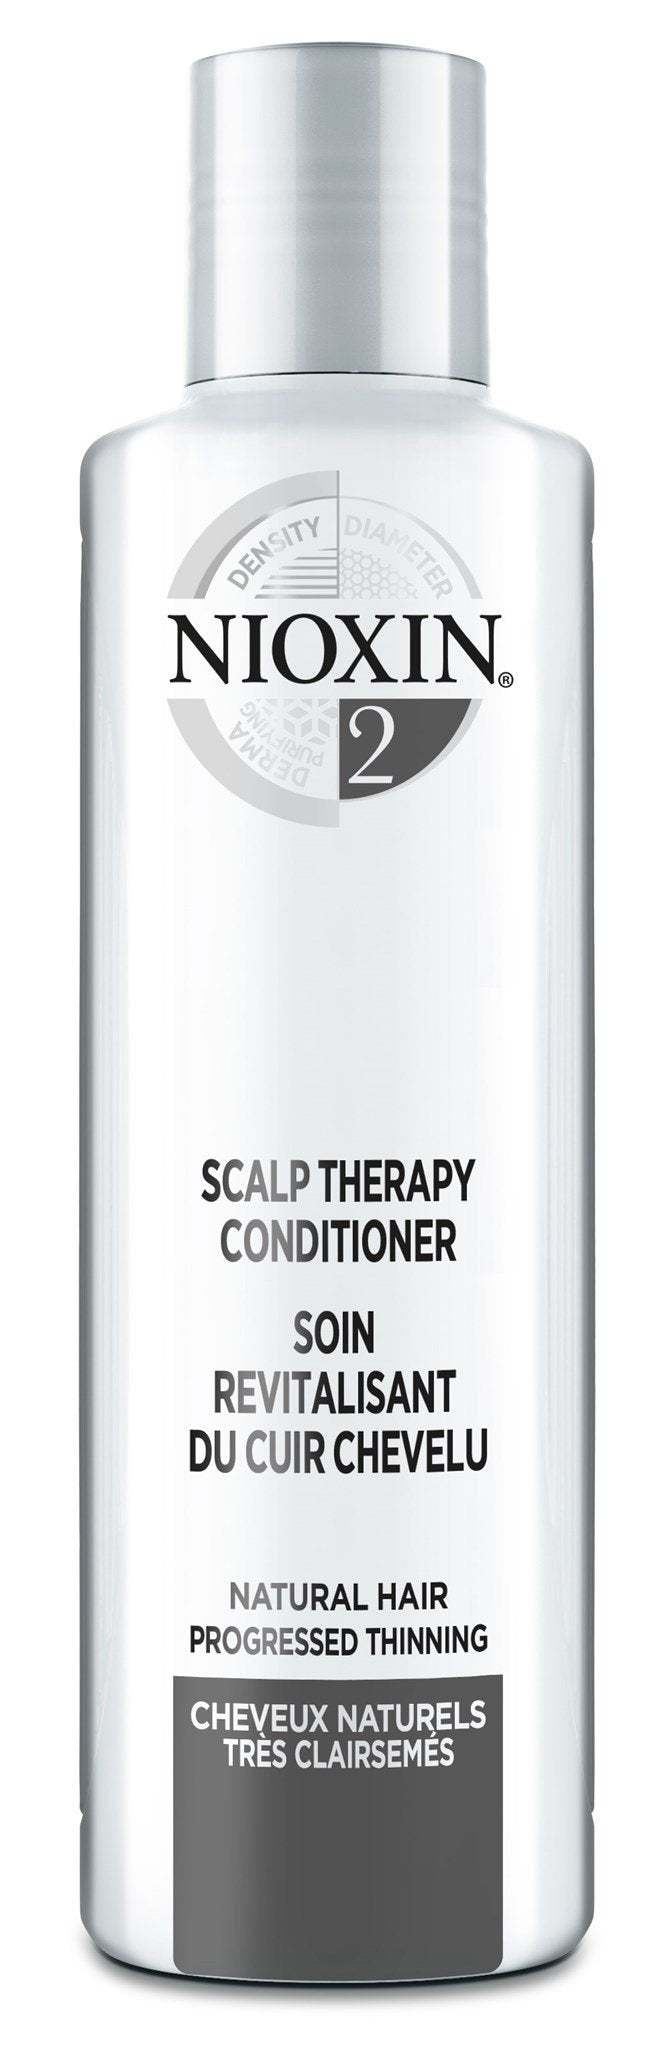 Nioxin 300ml System 2 Scalp Therapy 300ml